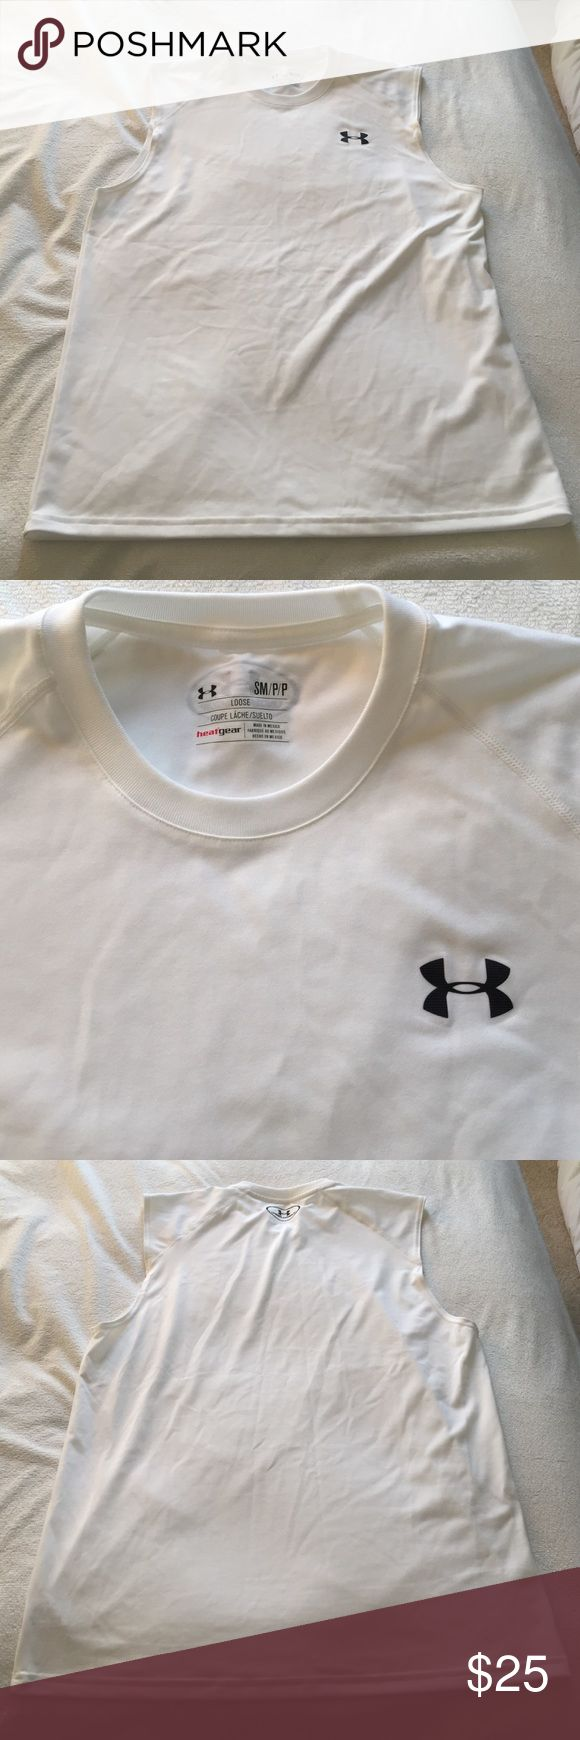 Men's Sleeveless Under Armour Tank Men's Sleeveless Under Armour Tank in white. NWOT. Heat Gear fabric and a loose fit cut. Perfect condition! Under Armour Shirts Tank Tops